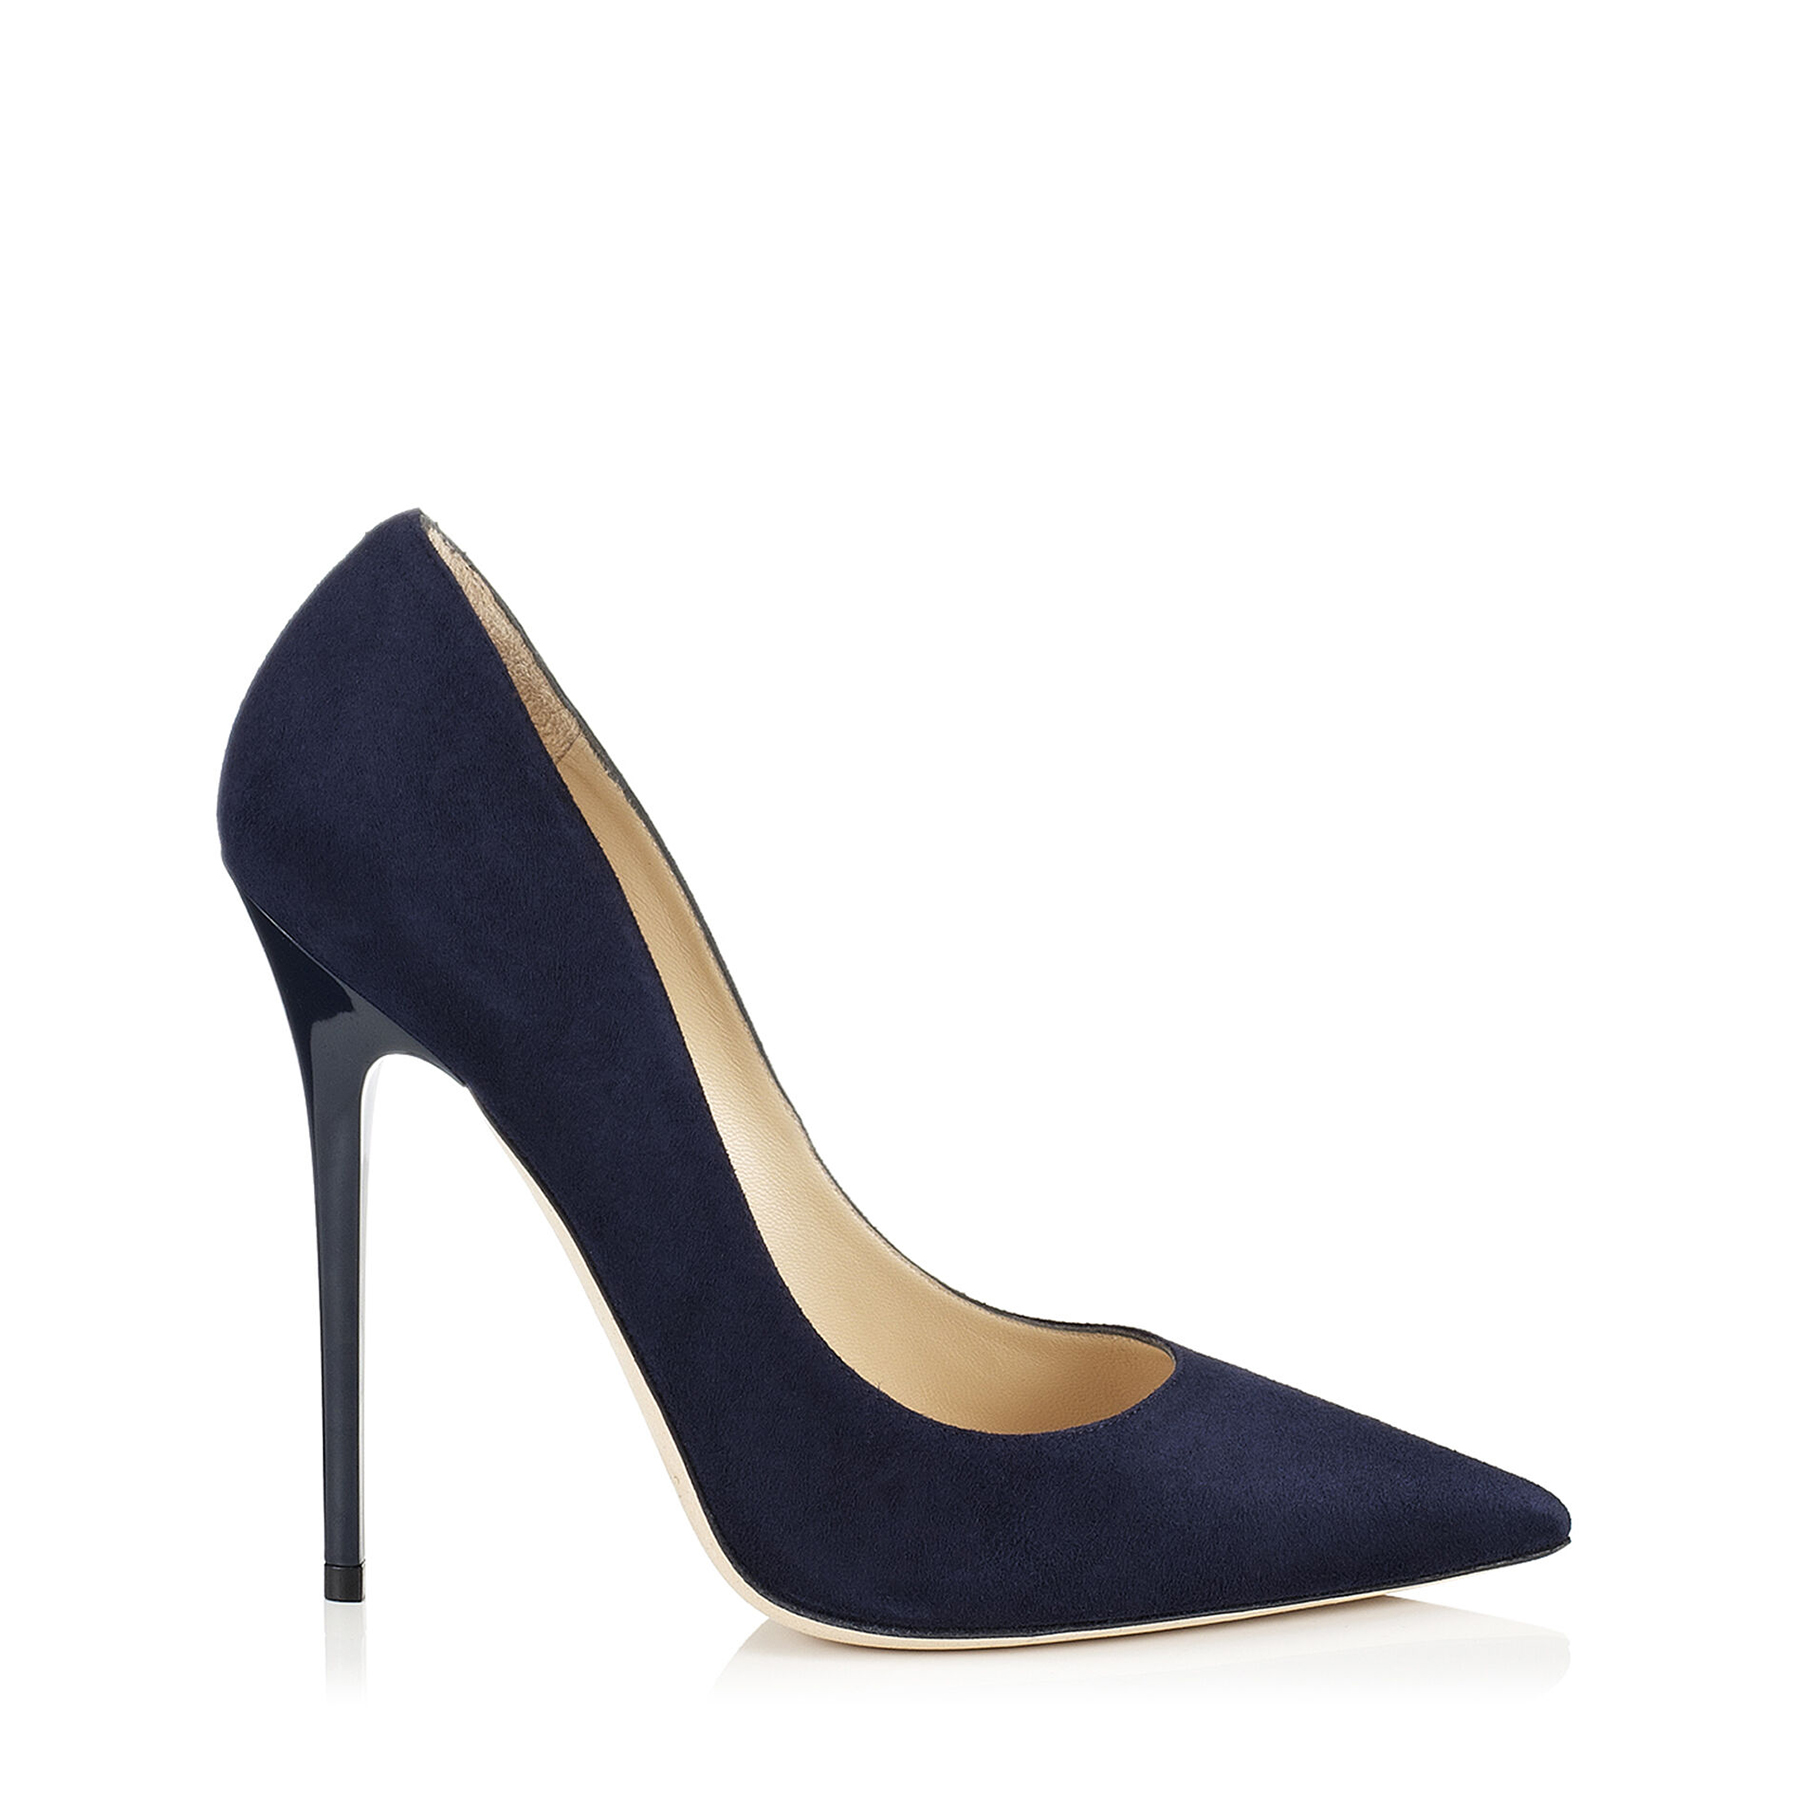 ANOUK Navy Suede Pointy Toe Pumps by Jimmy Choo